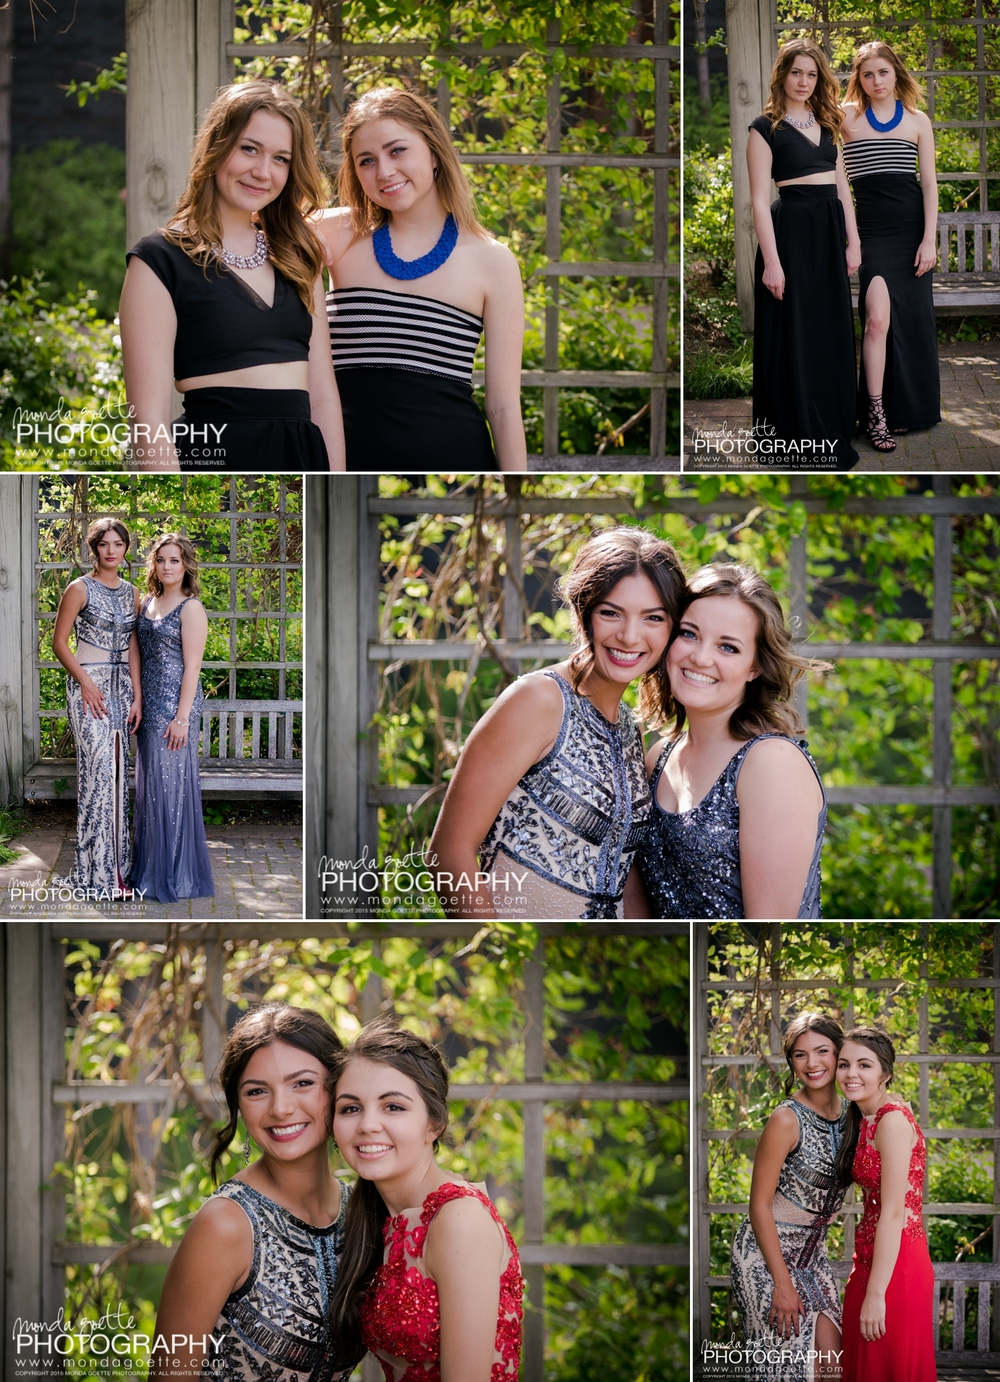 friend-sessions-seniors-twin-cities